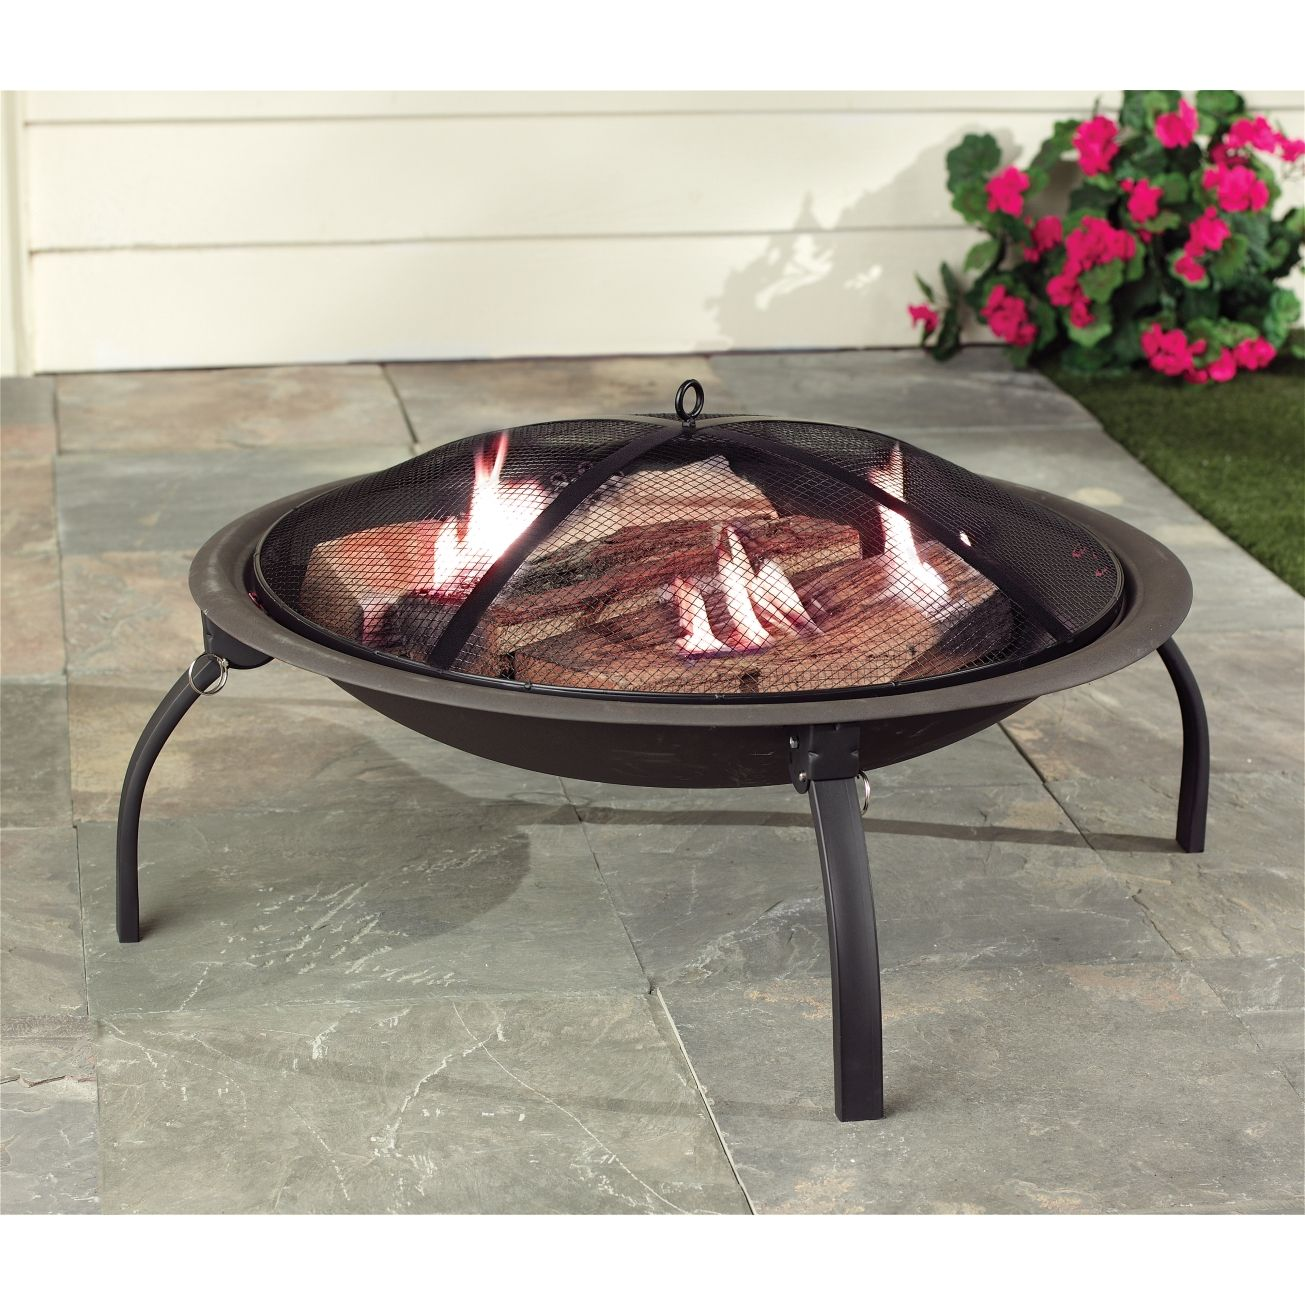 Beautiful Living Accents Outdoor Fireplace Part - 8: Living Accents® 28in Portable Firepit - Outdoor Fireplaces - Ace Hardware